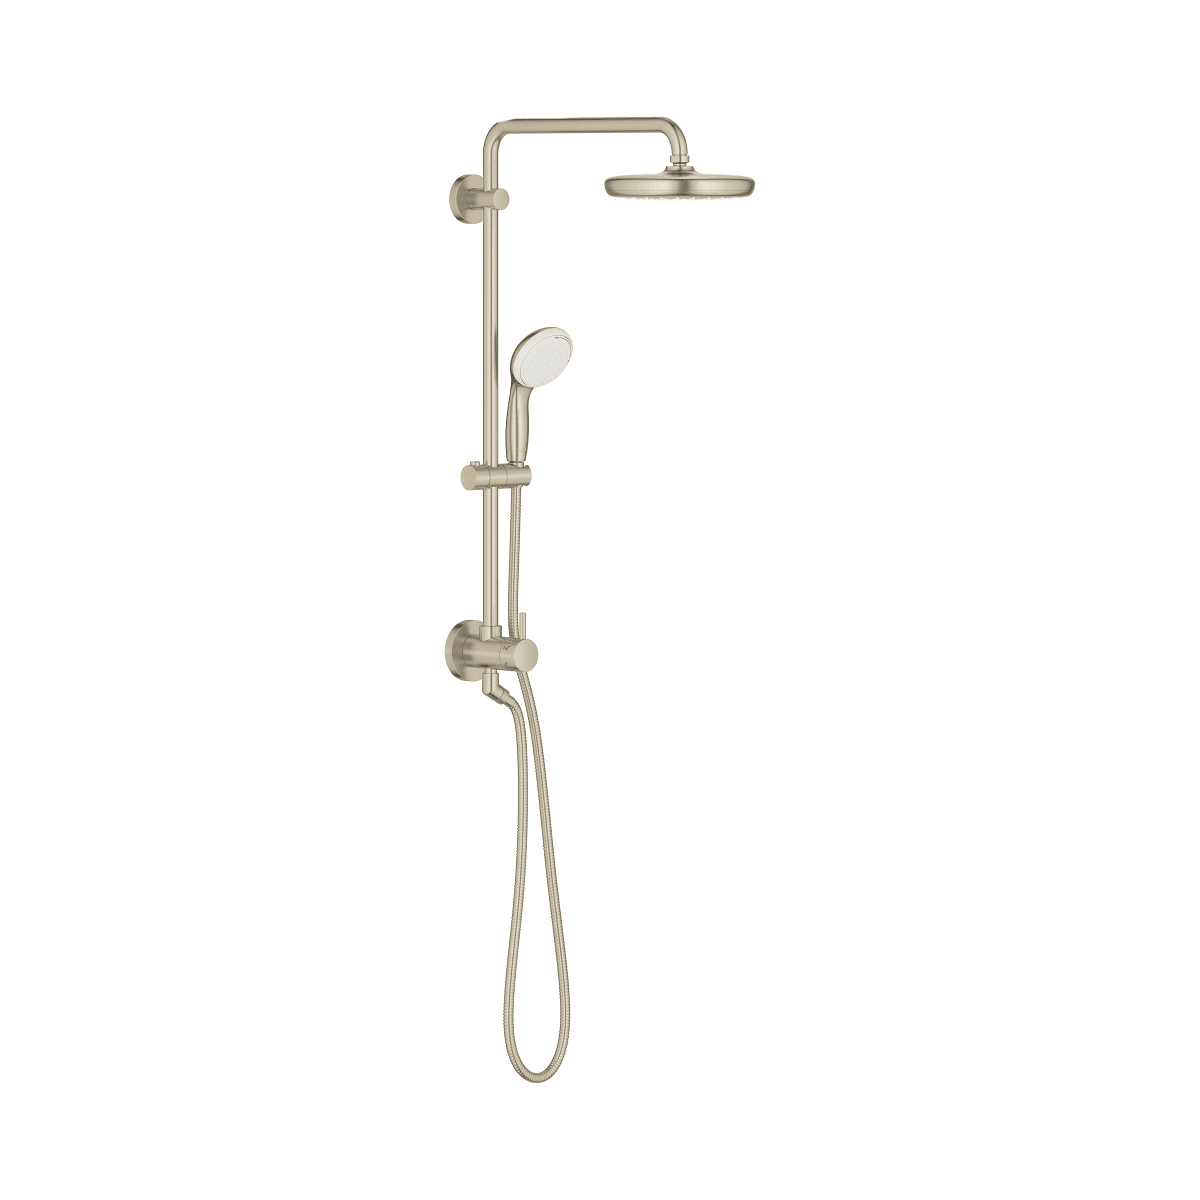 Grohe 26 123 1